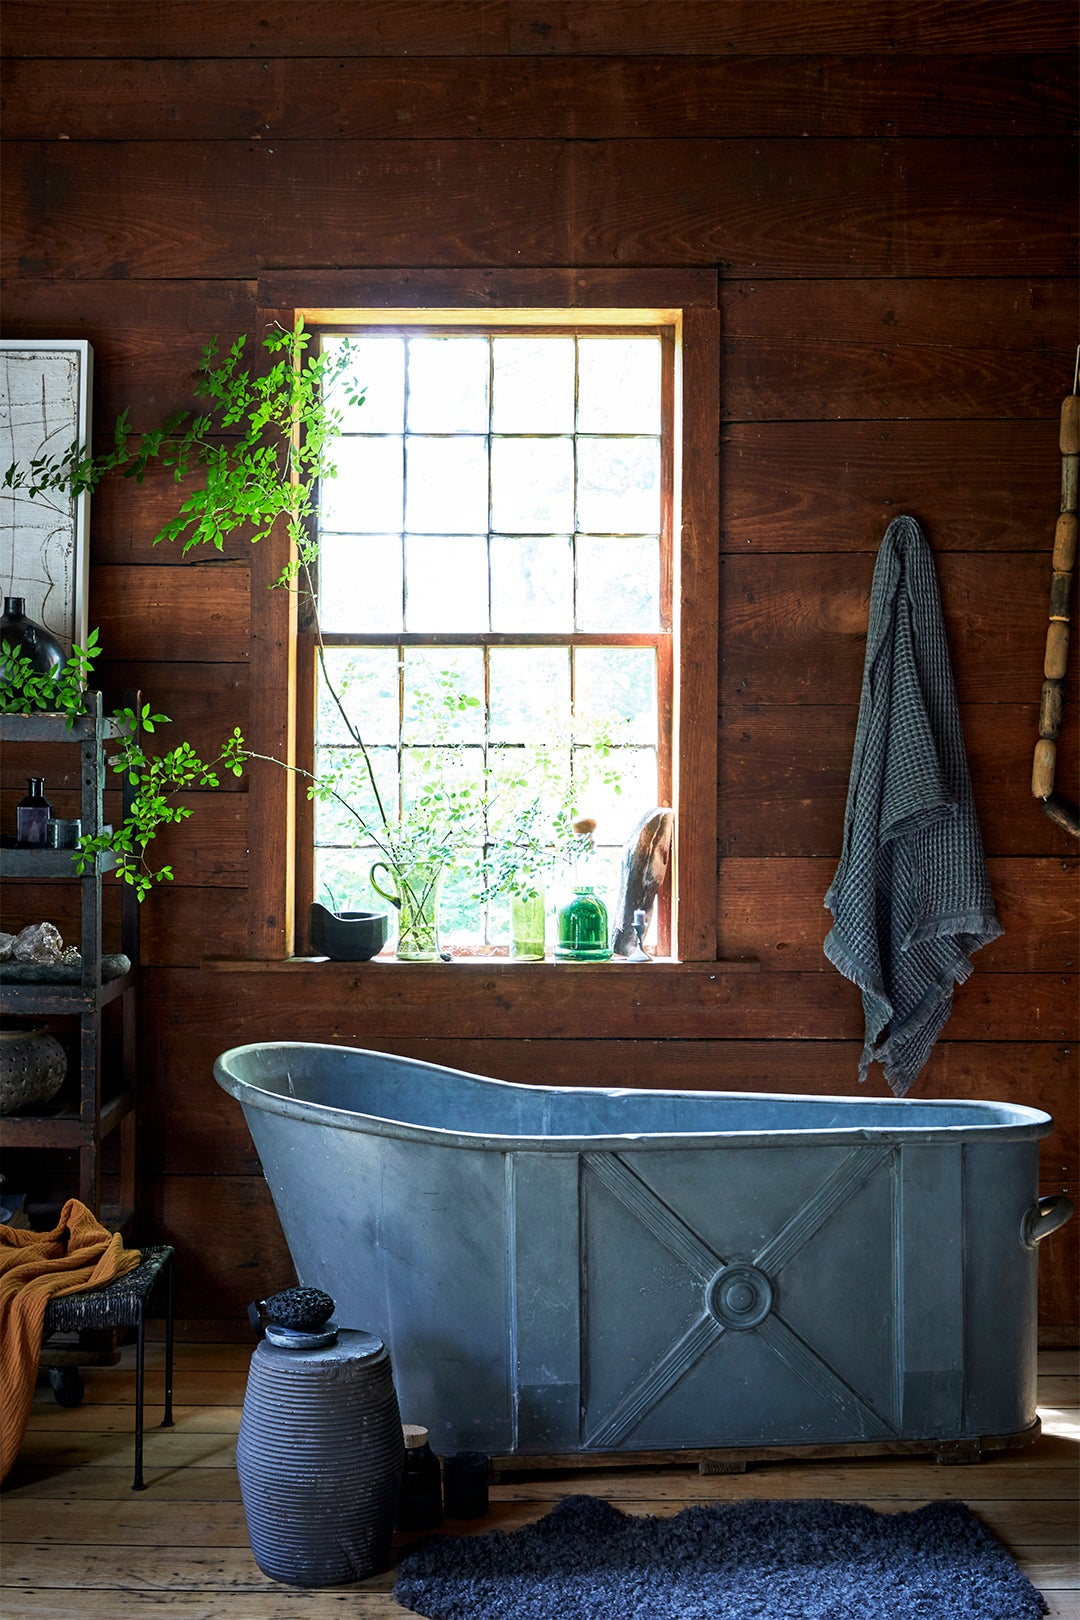 metal tub in a cabin